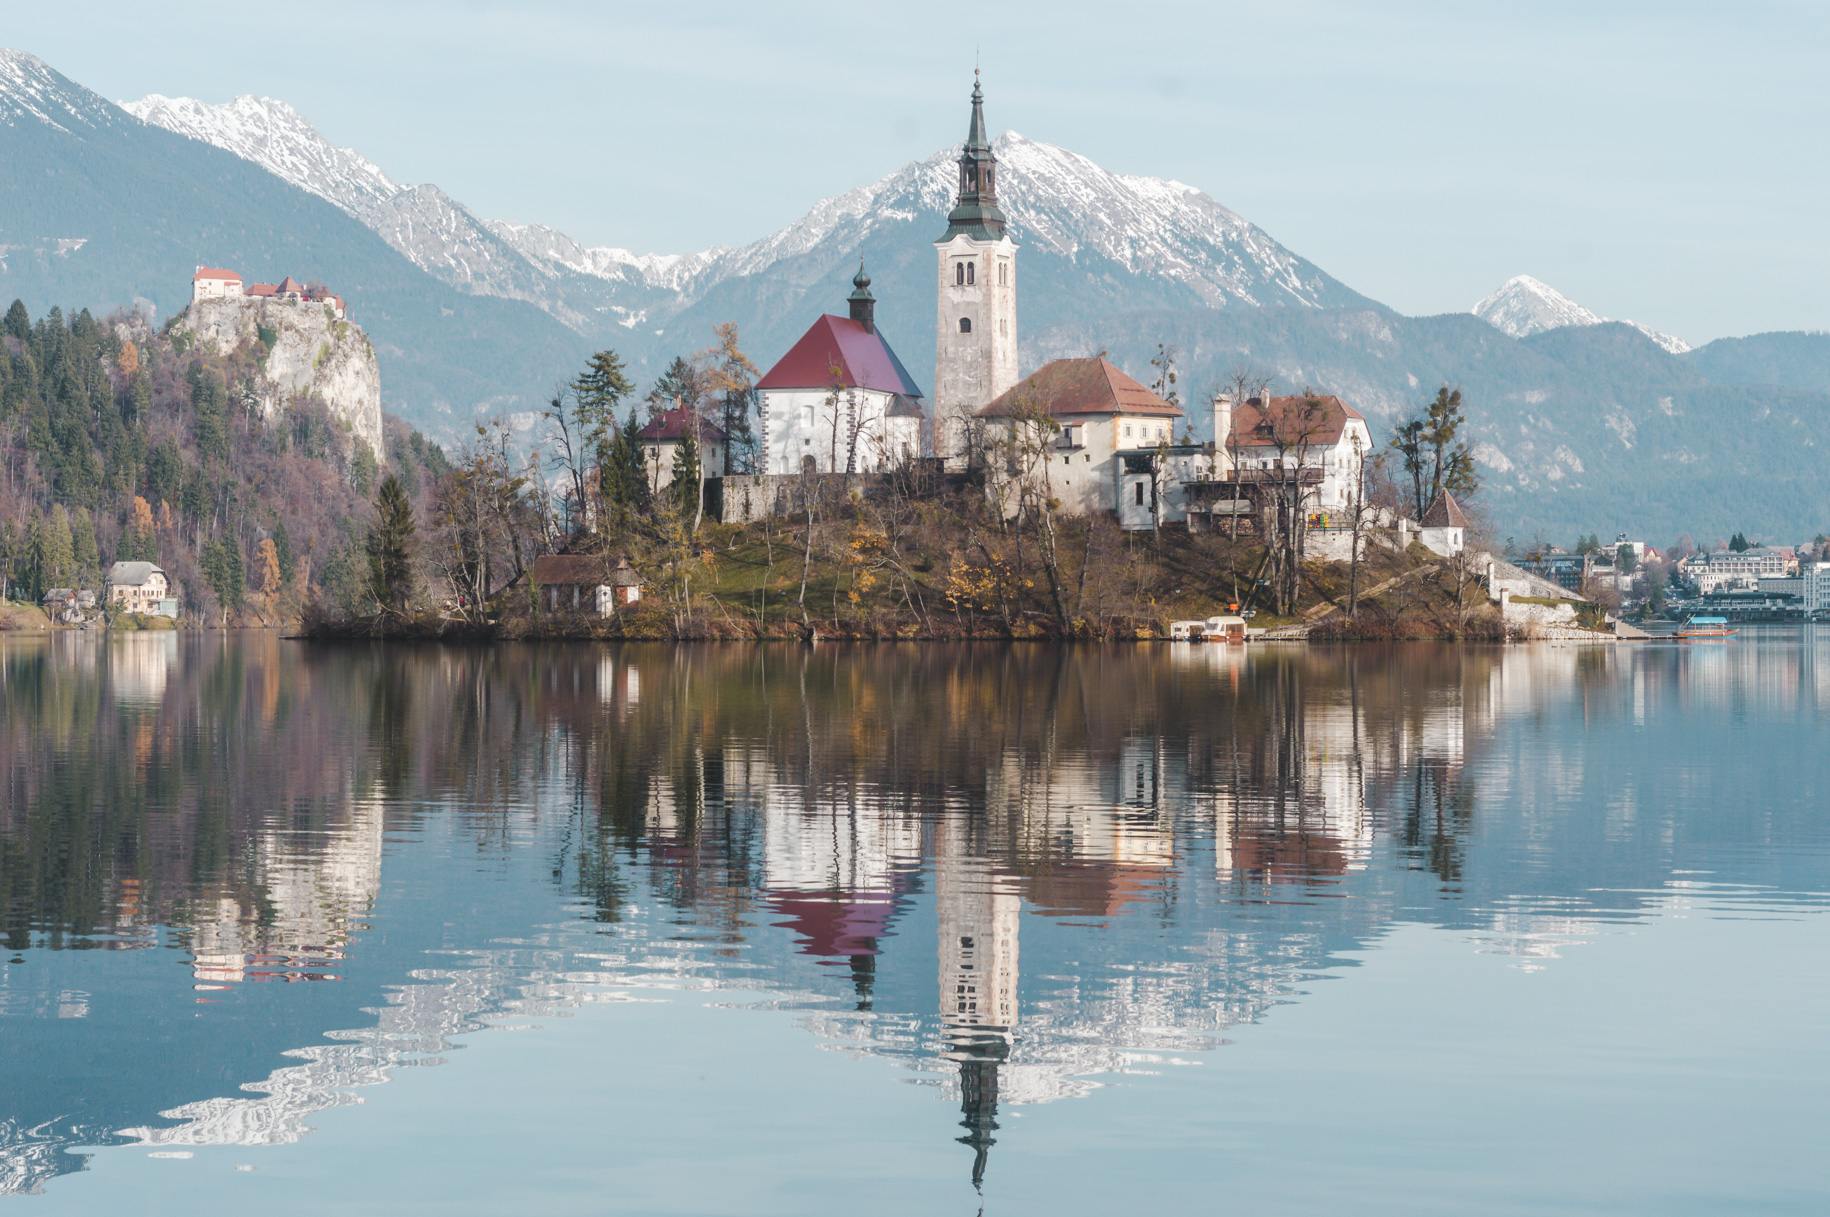 2017 travel highlight: visiting Lake Bled, Slovenia.